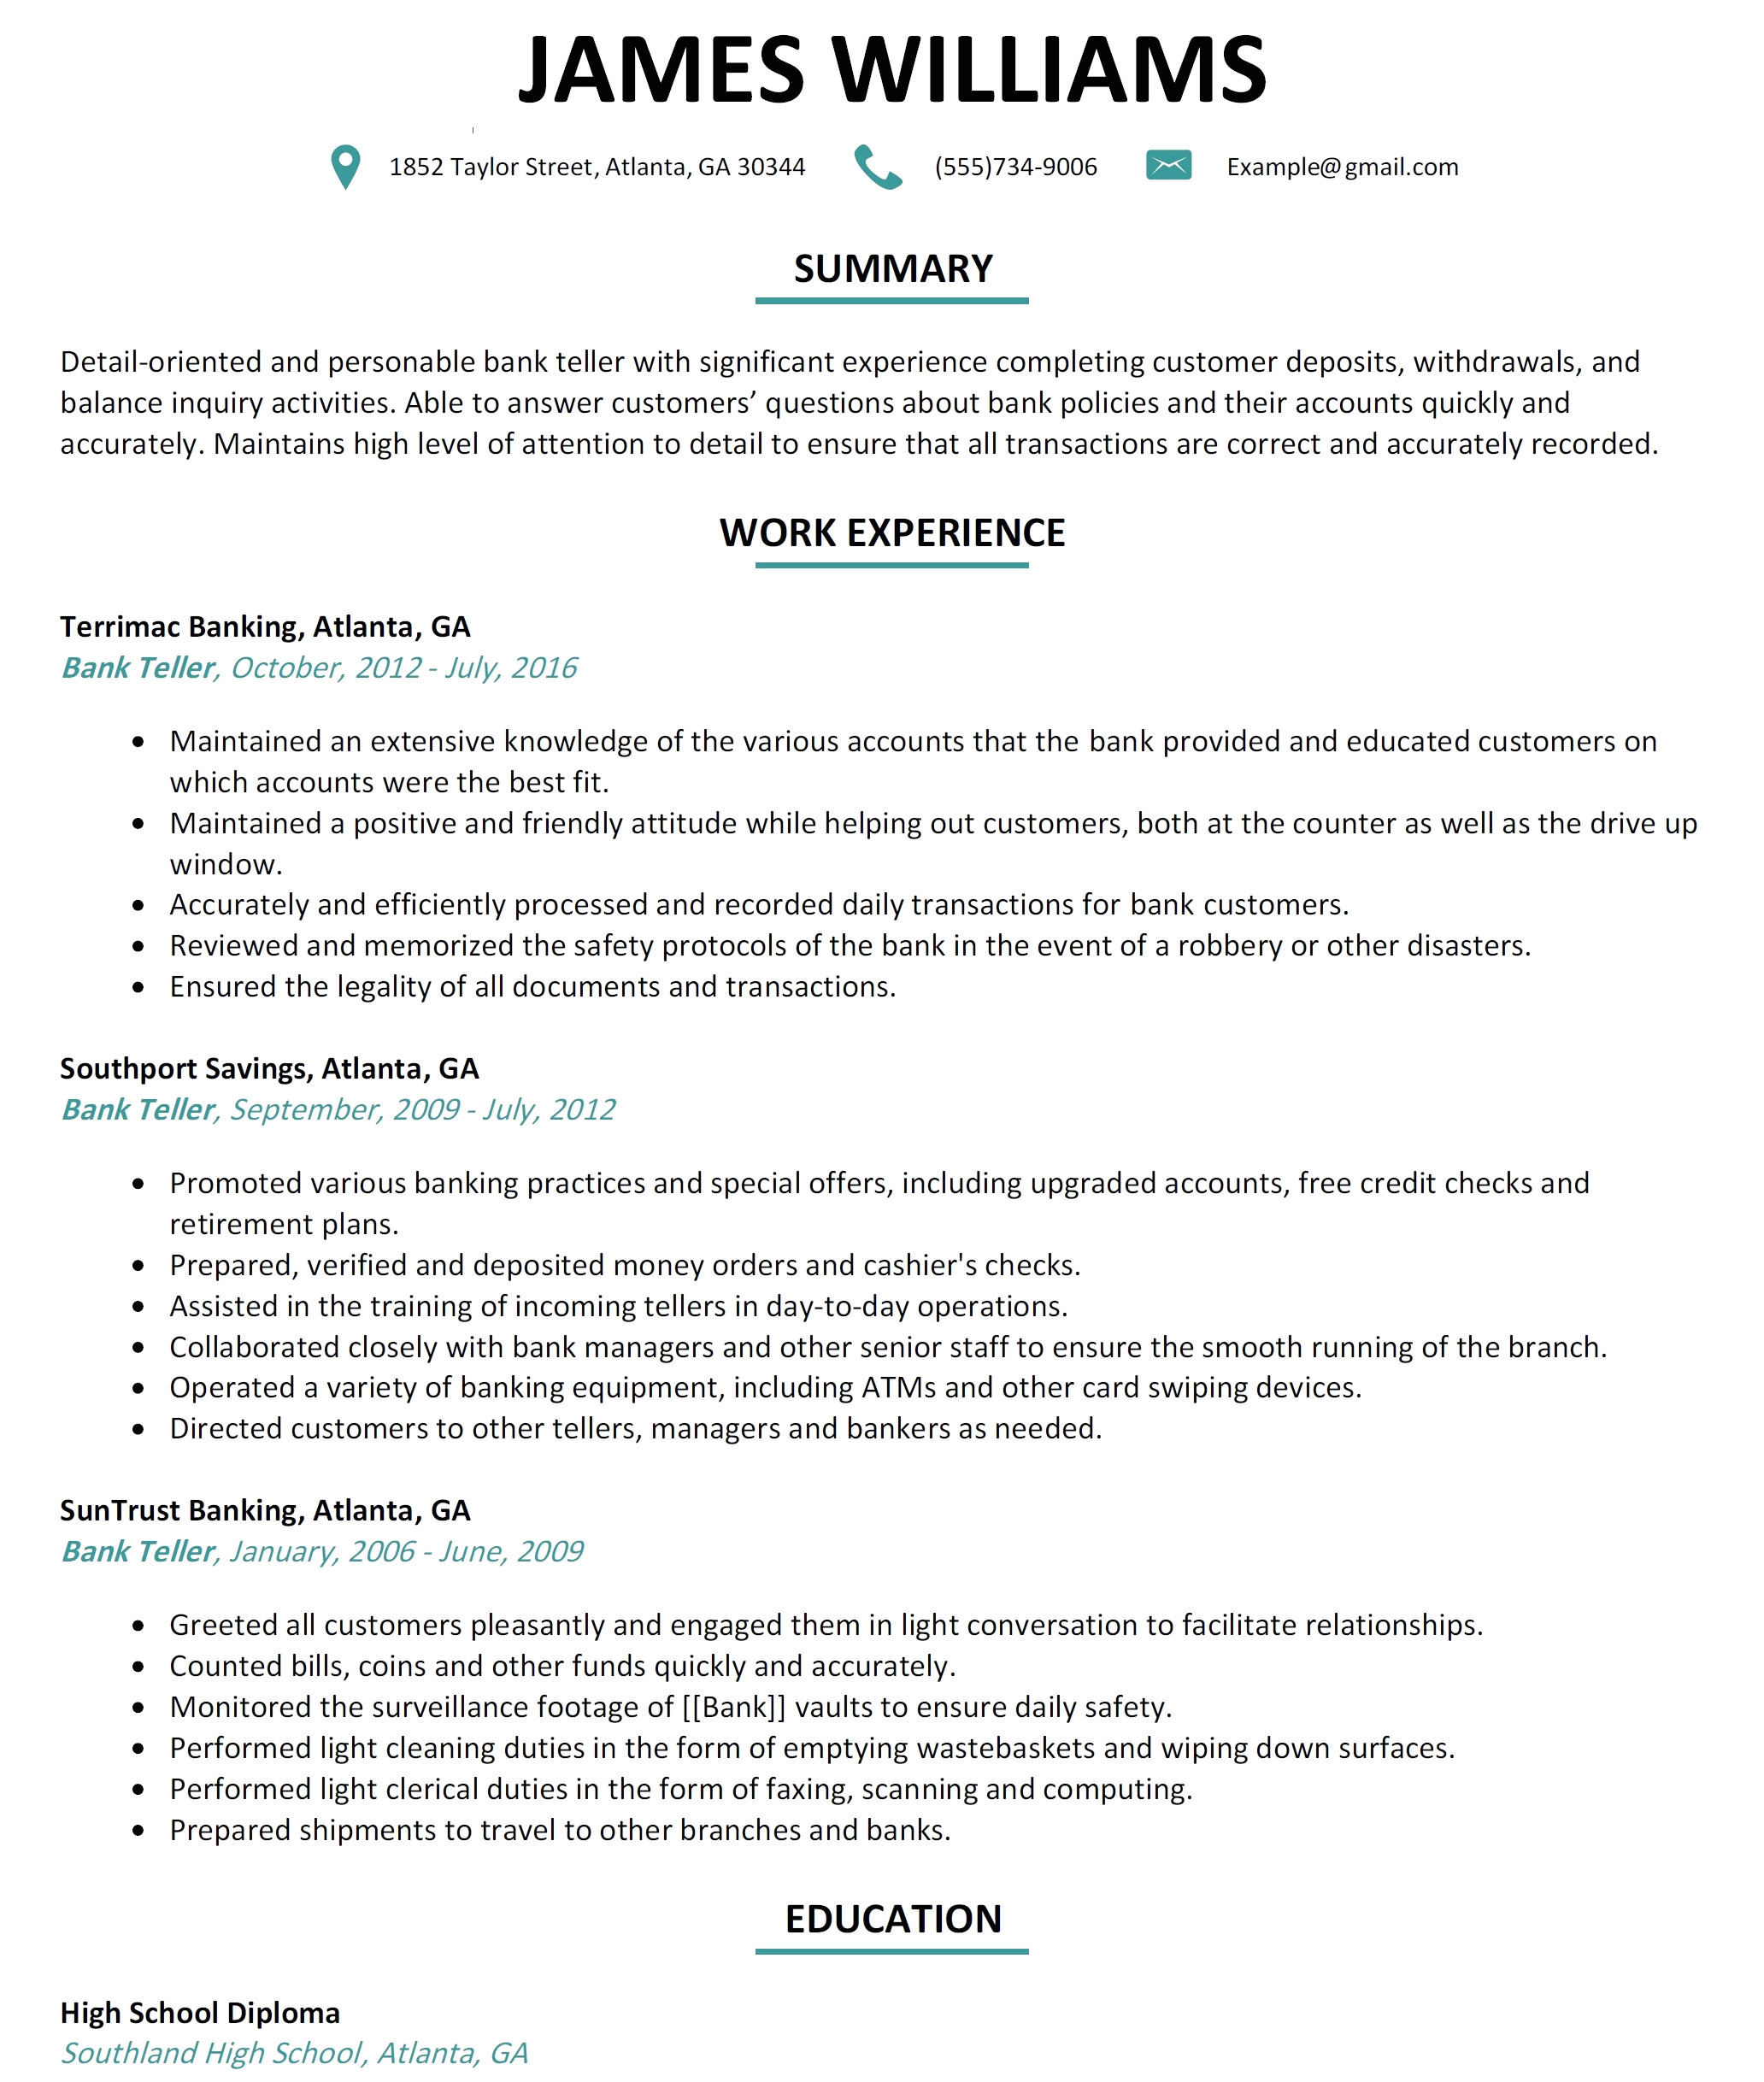 sample resume for bank jobs with no experience